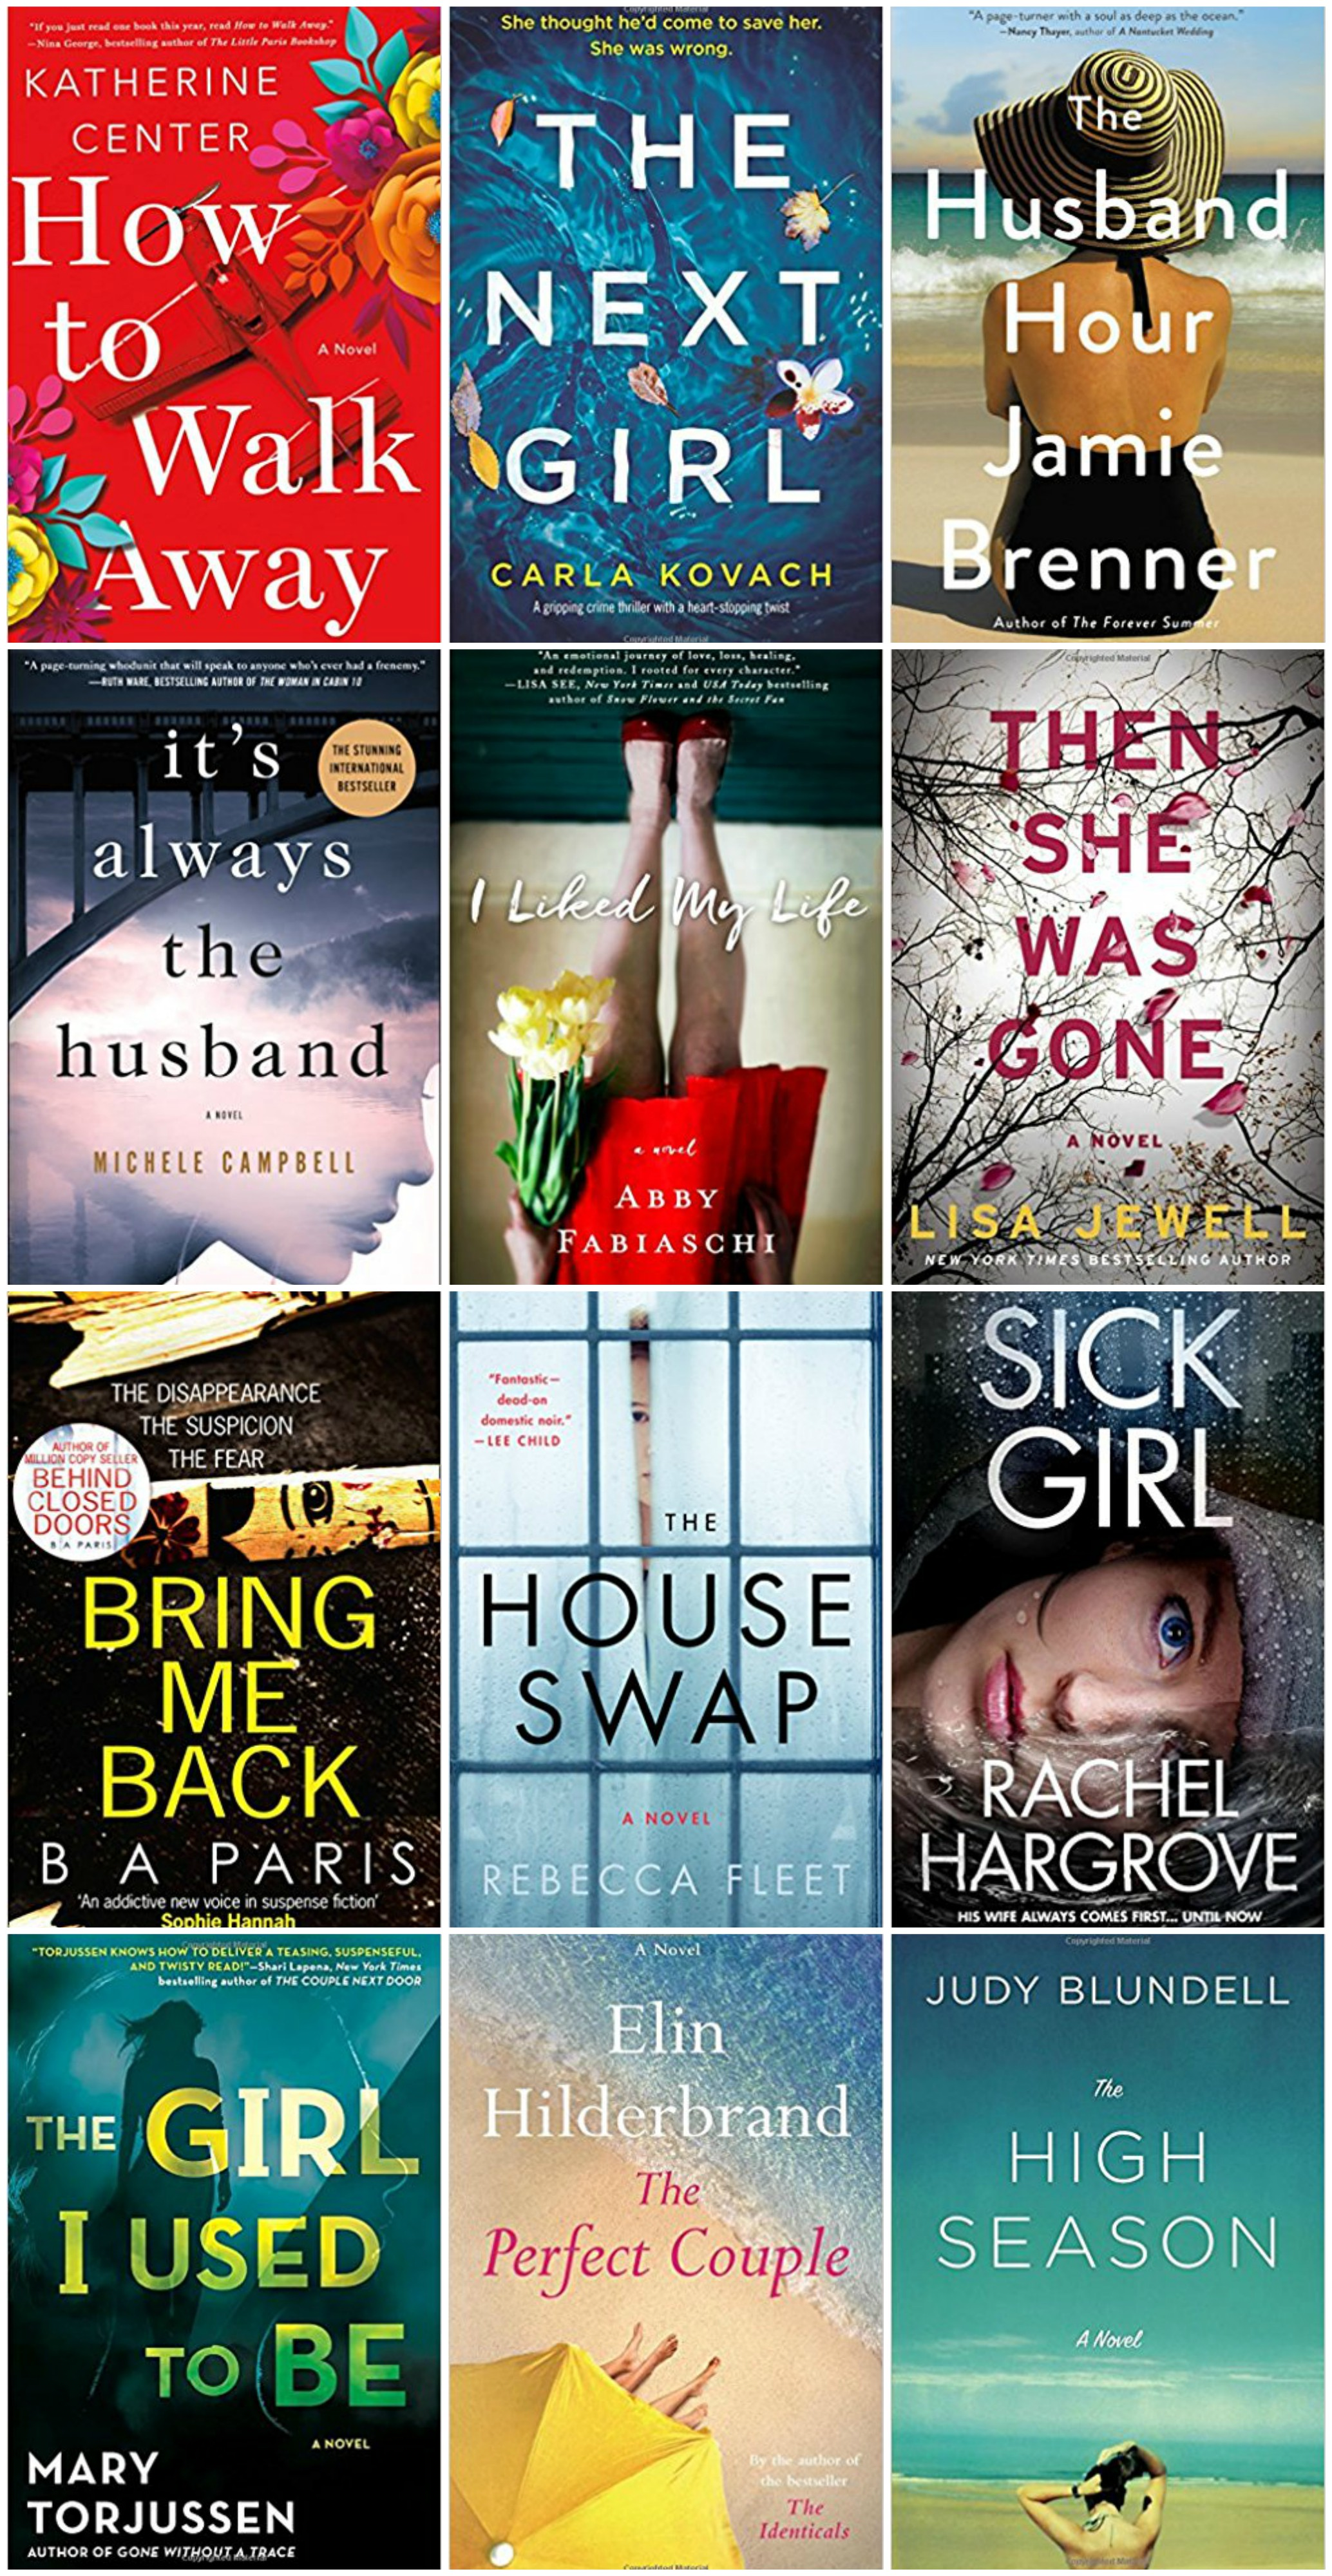 12 Beach Reads For Summer - Summer Books To Read - Books For Women - Psychological Thrillers - Fiction Books To Read This Summer - Communikait by Kait Hanson